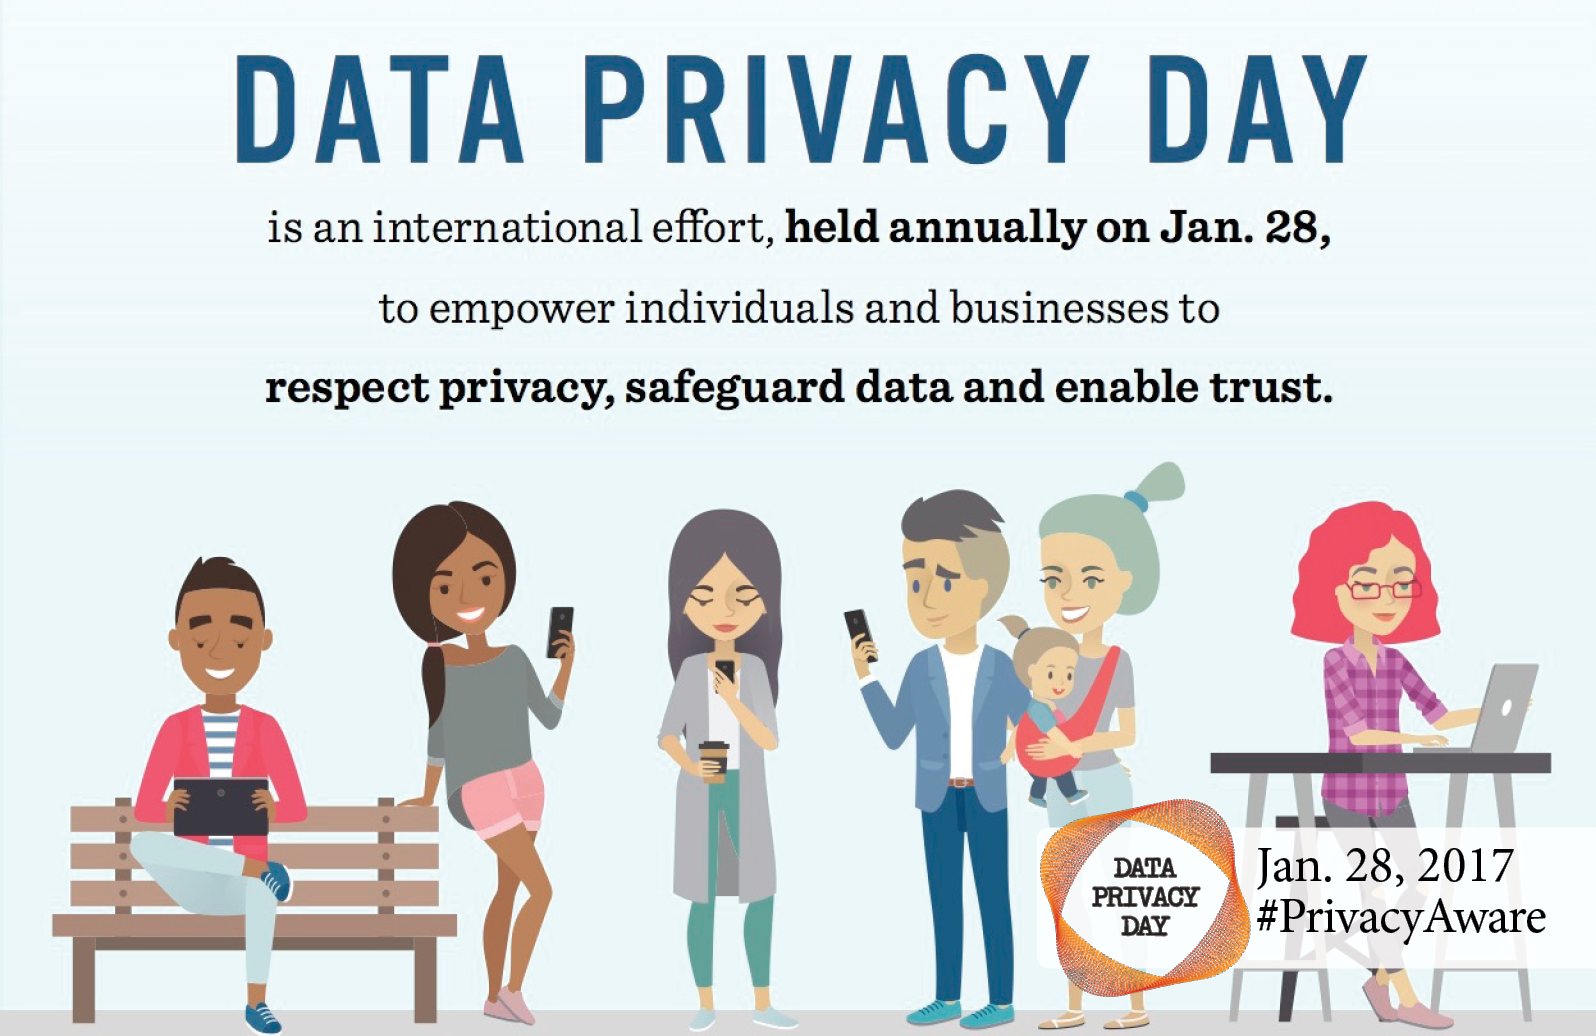 Data Privacy Day image